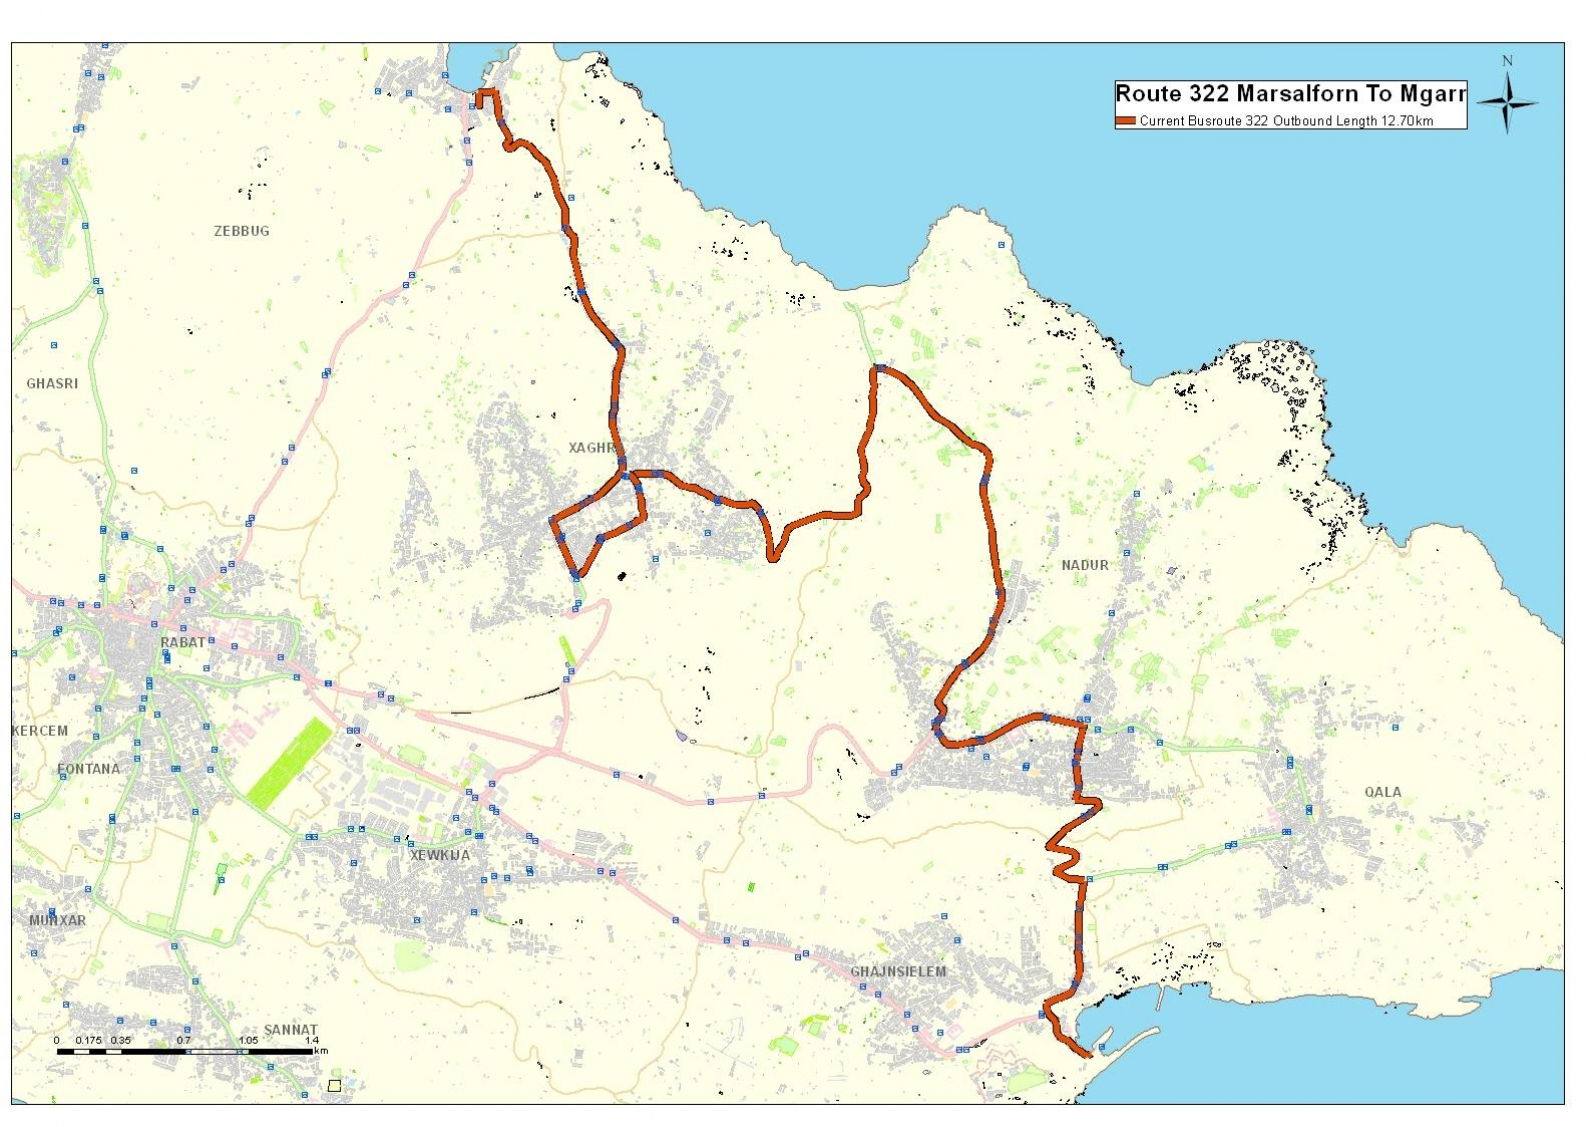 Land-current-network-routes-and-schedules-Gozo-28